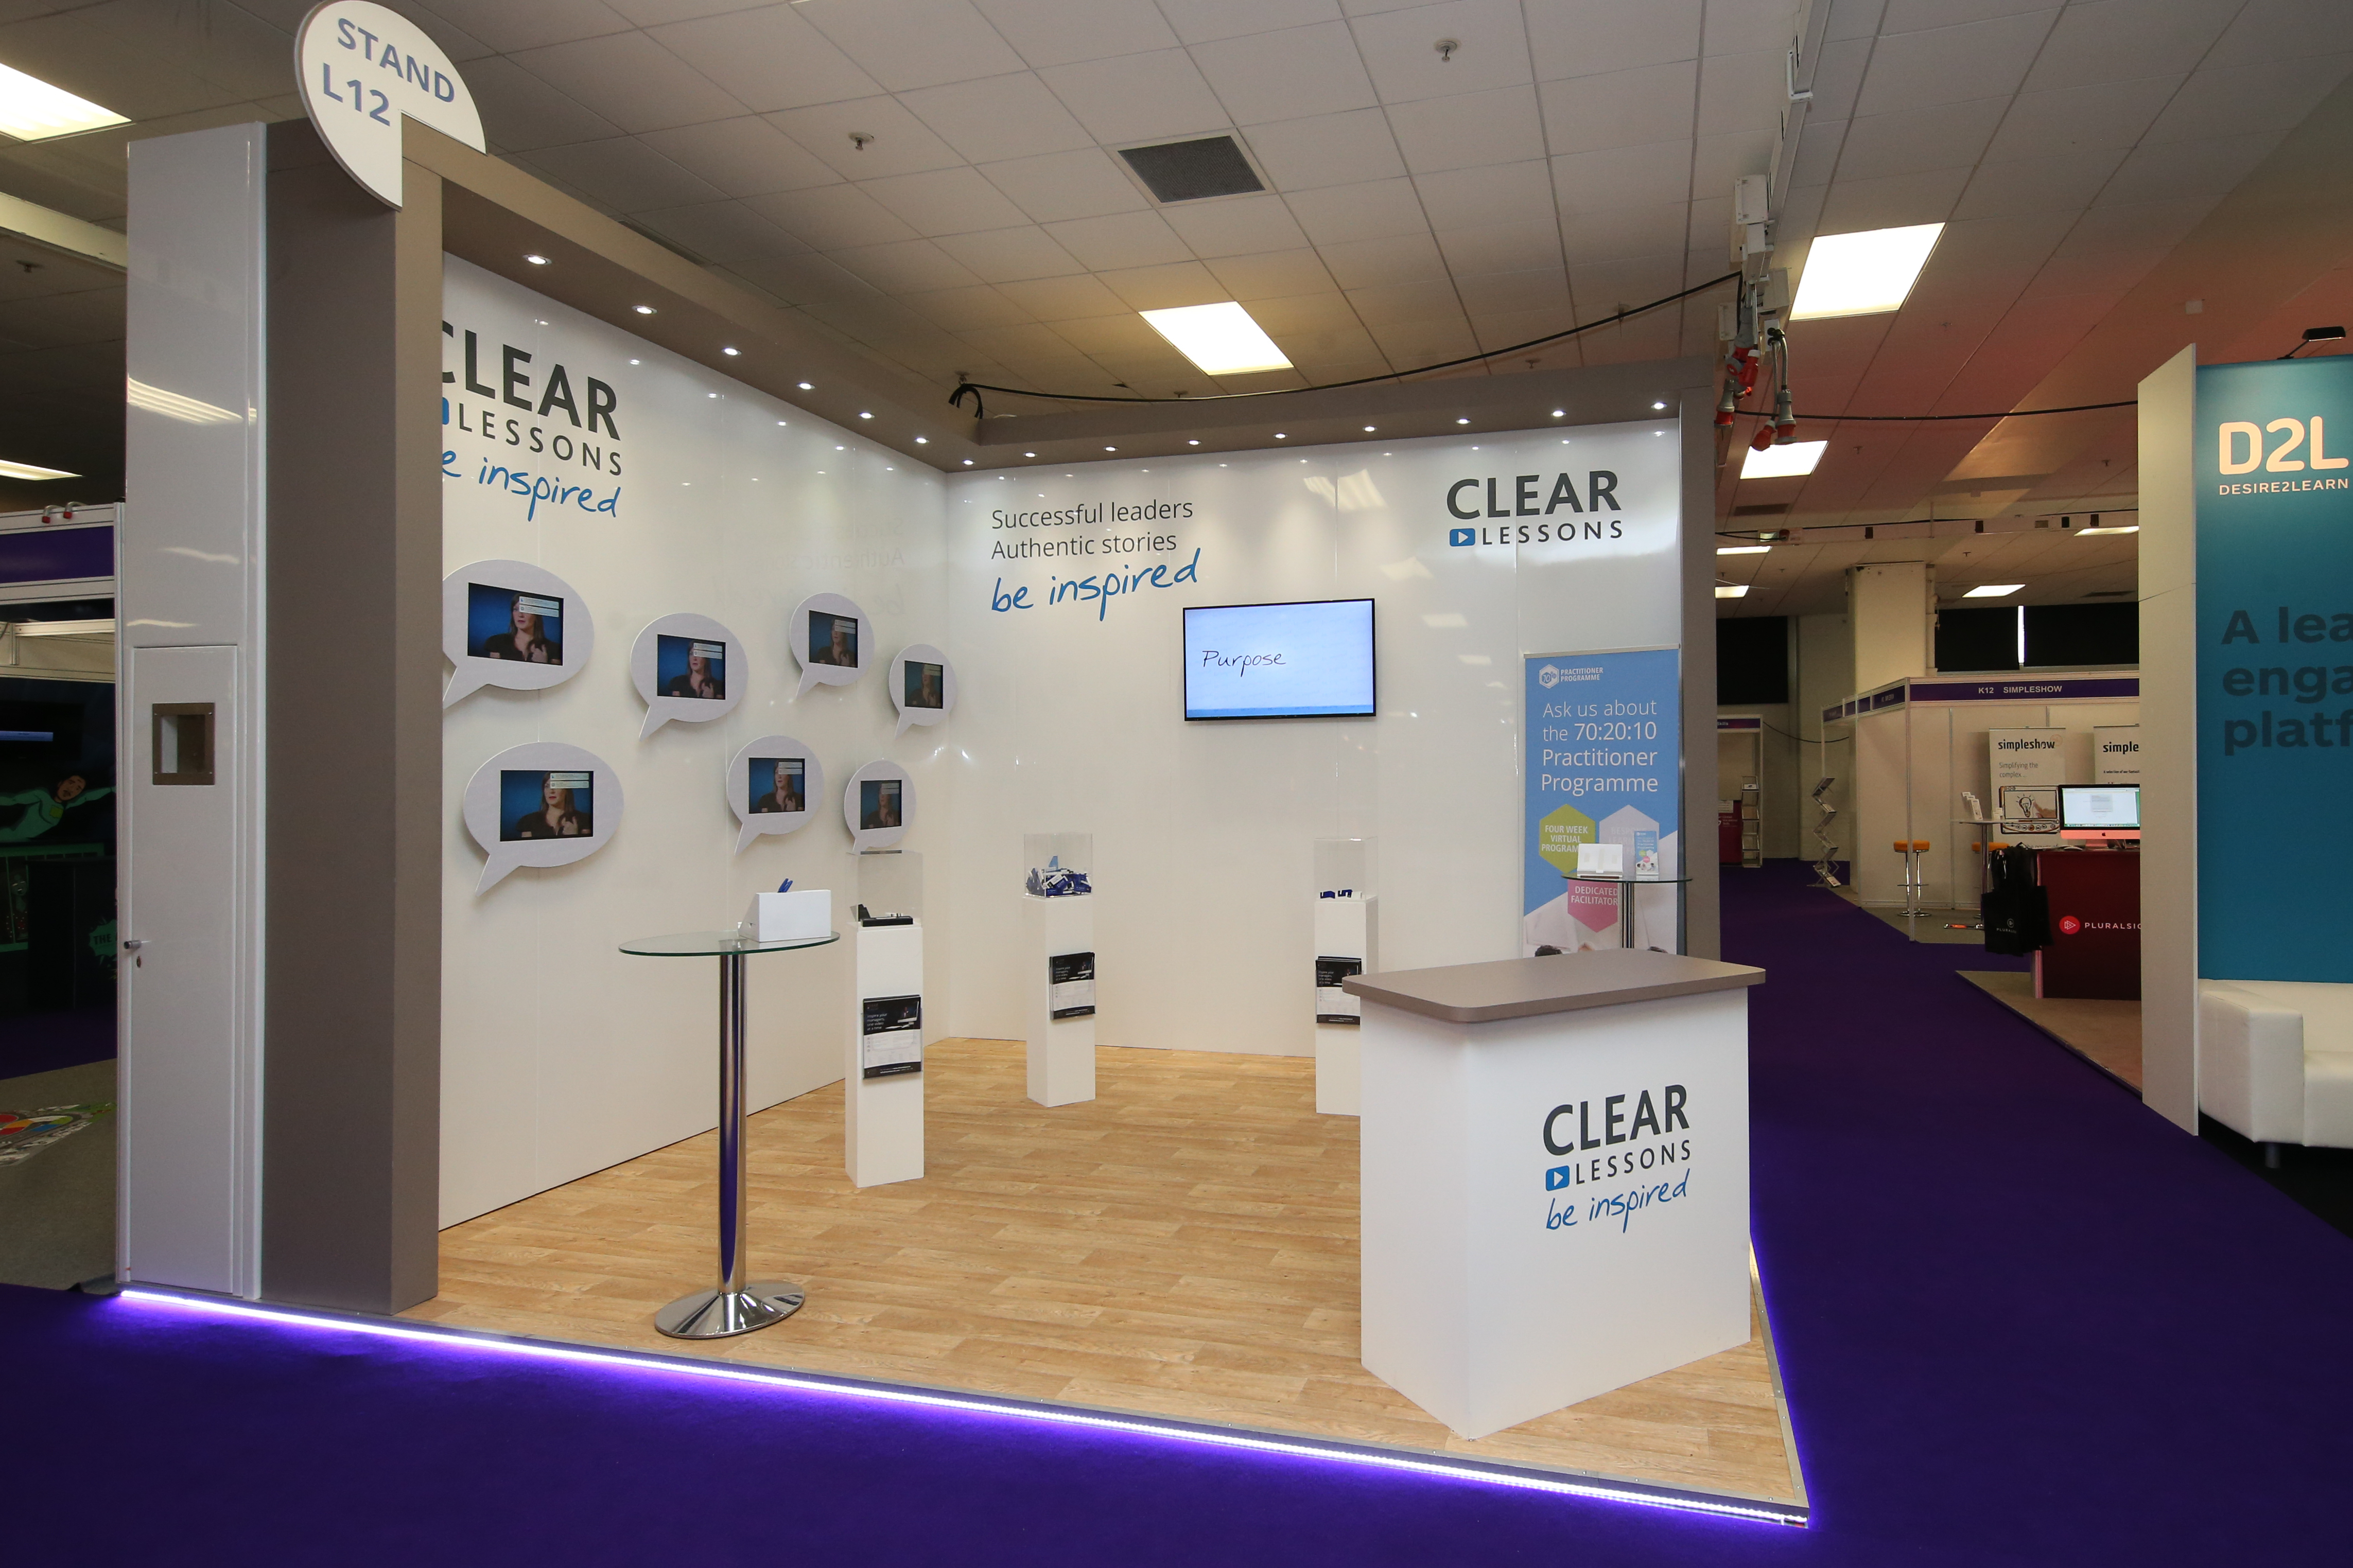 clear lesson bespoke exhibition package